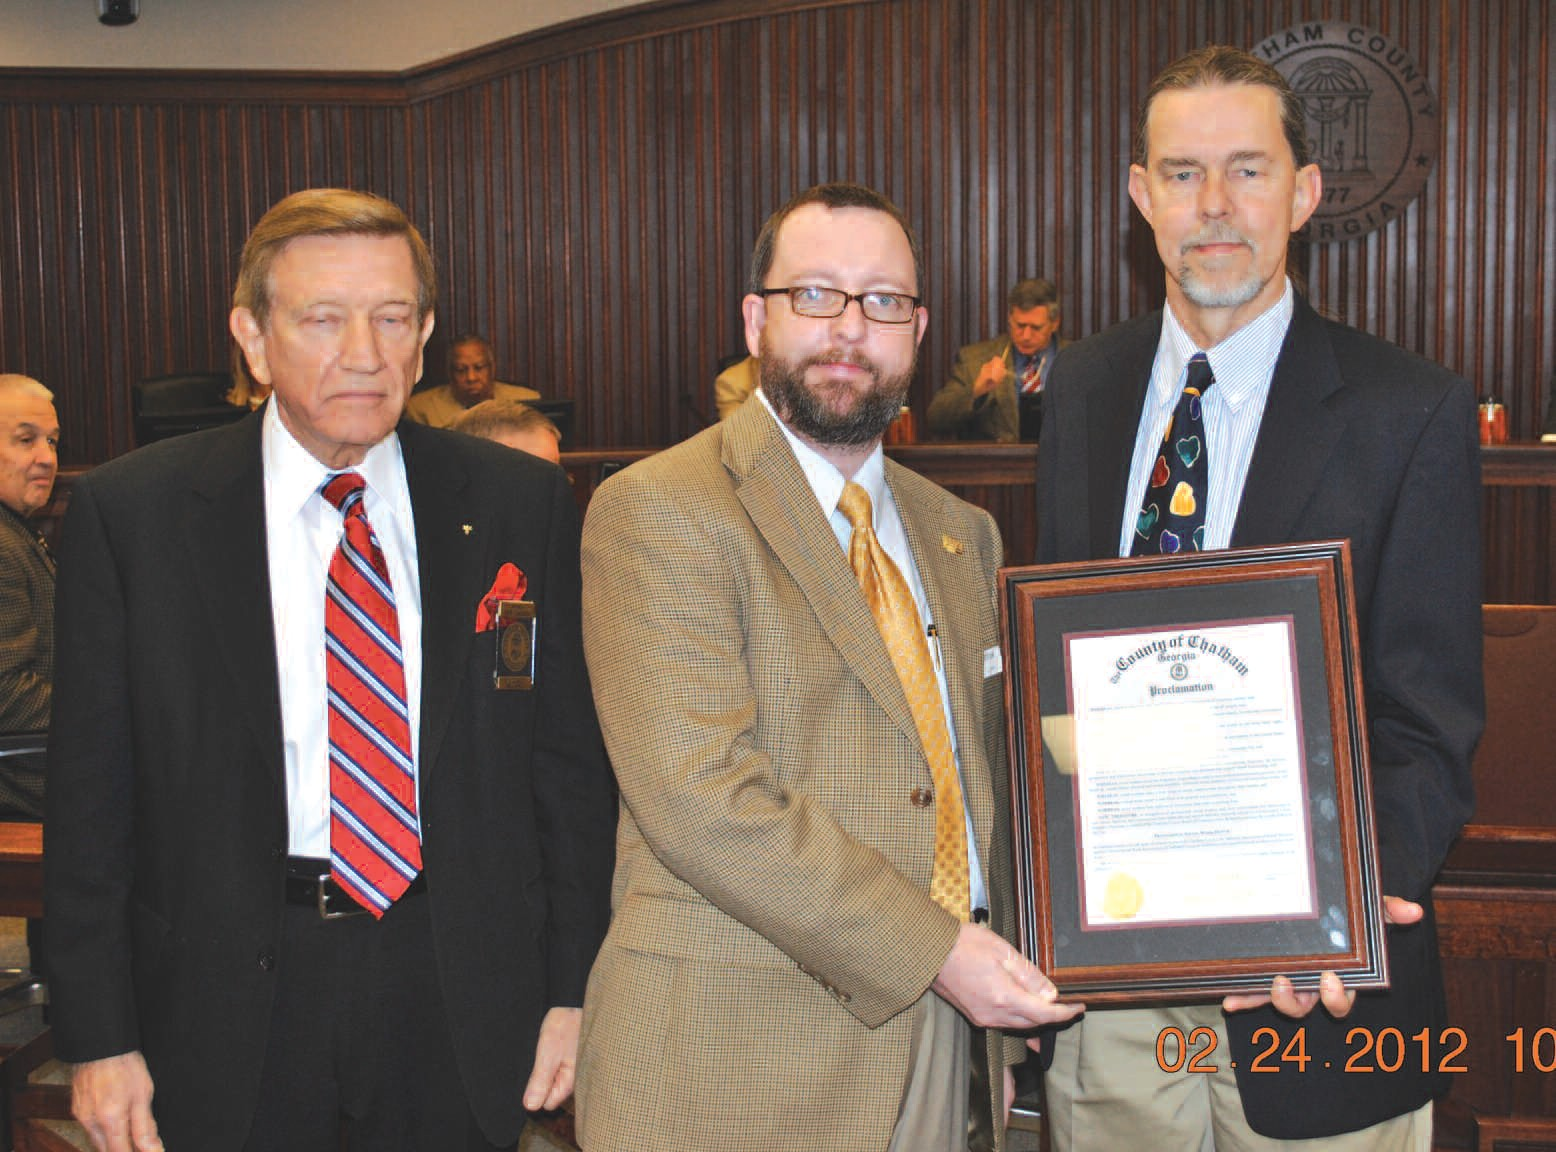 Chairman Pete Liakasis presents proclamation declaring March 2012 as